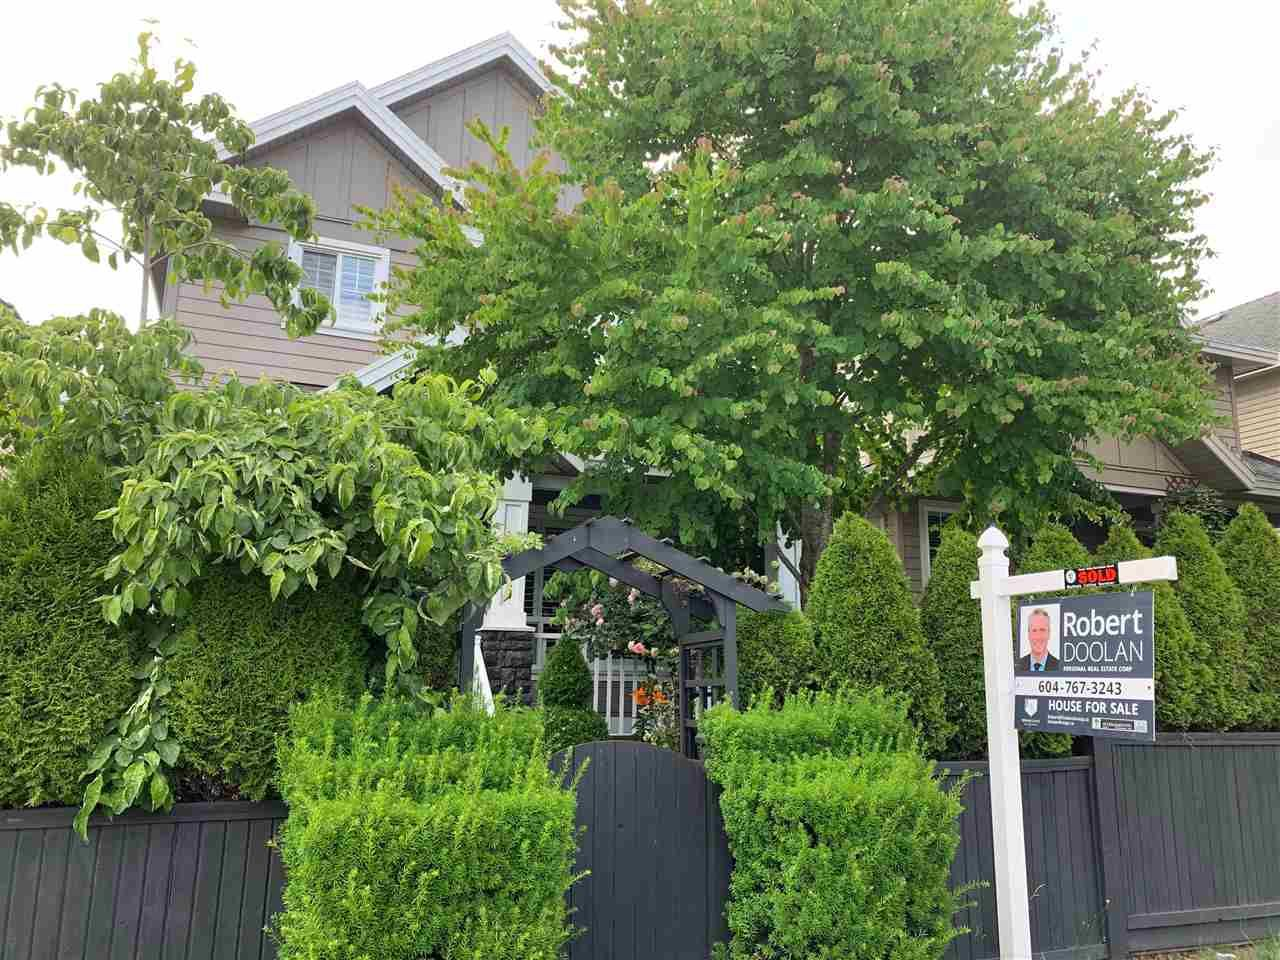 """Main Photo: 2920 152 Street in Surrey: King George Corridor House for sale in """"Southpointe Estates"""" (South Surrey White Rock)  : MLS®# R2356530"""